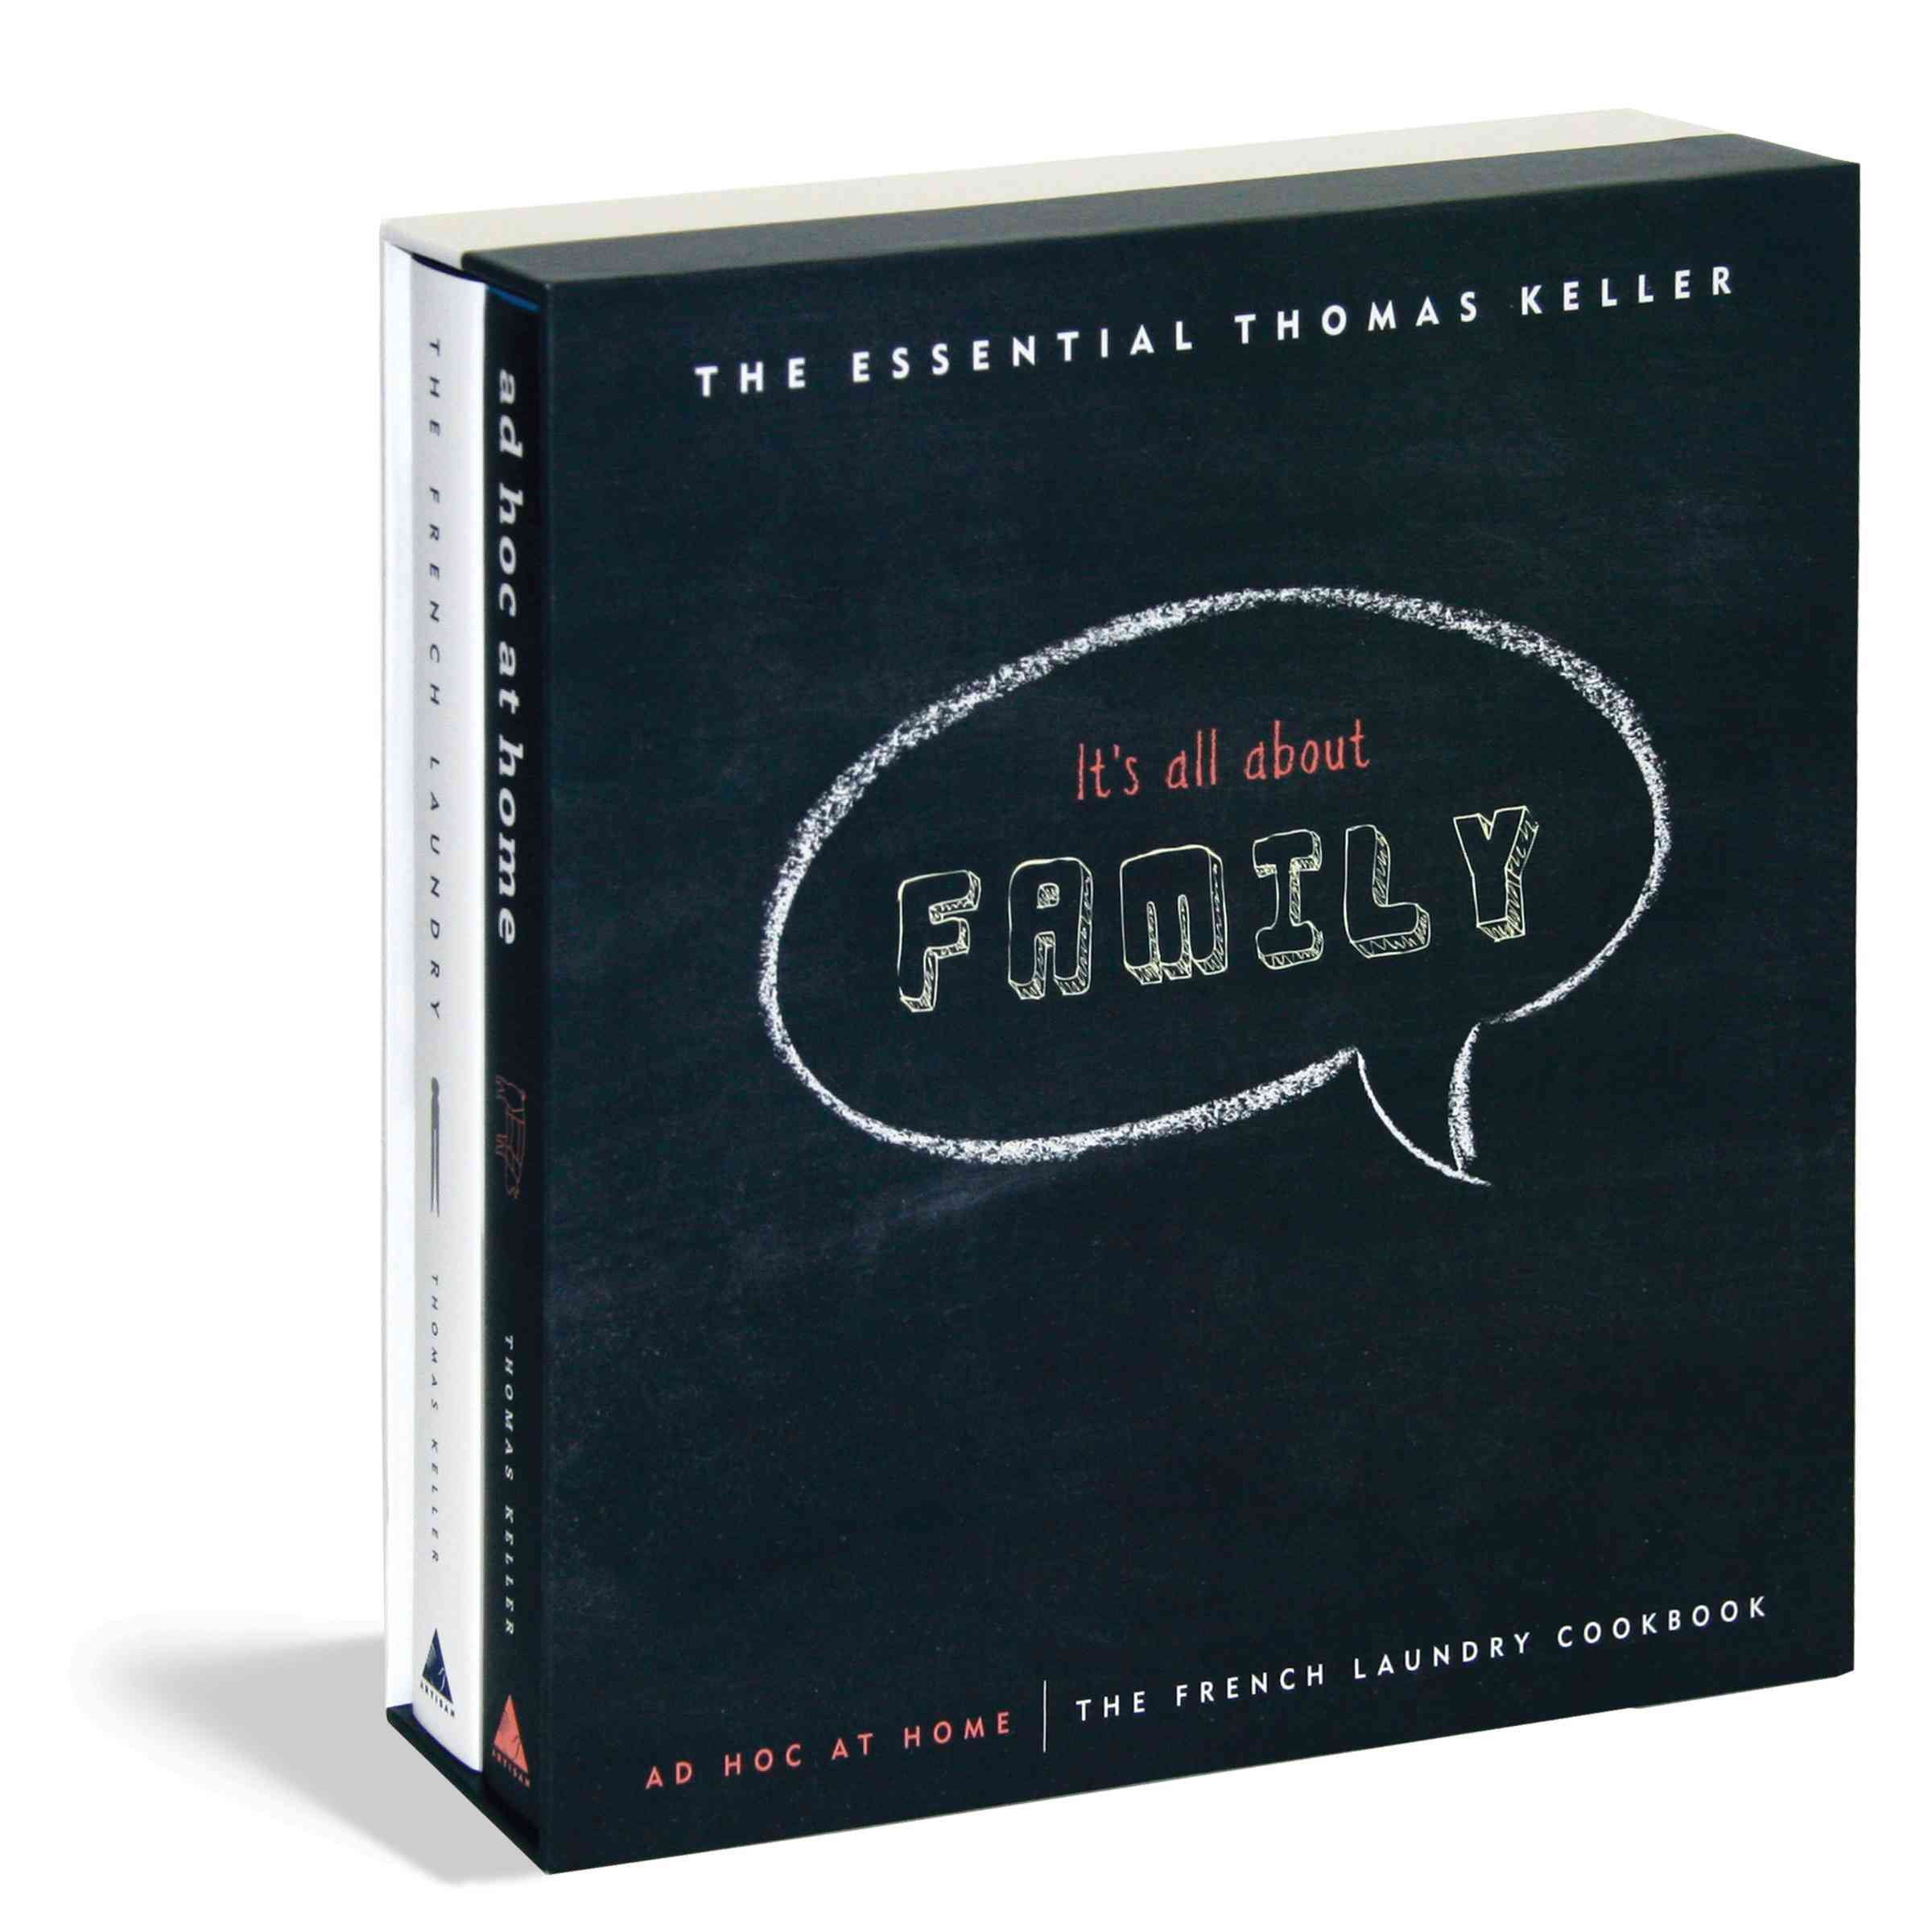 The Essential Thomas Keller: The French Laundry Cookbook / Ad Hoc at Home (Hardcover)